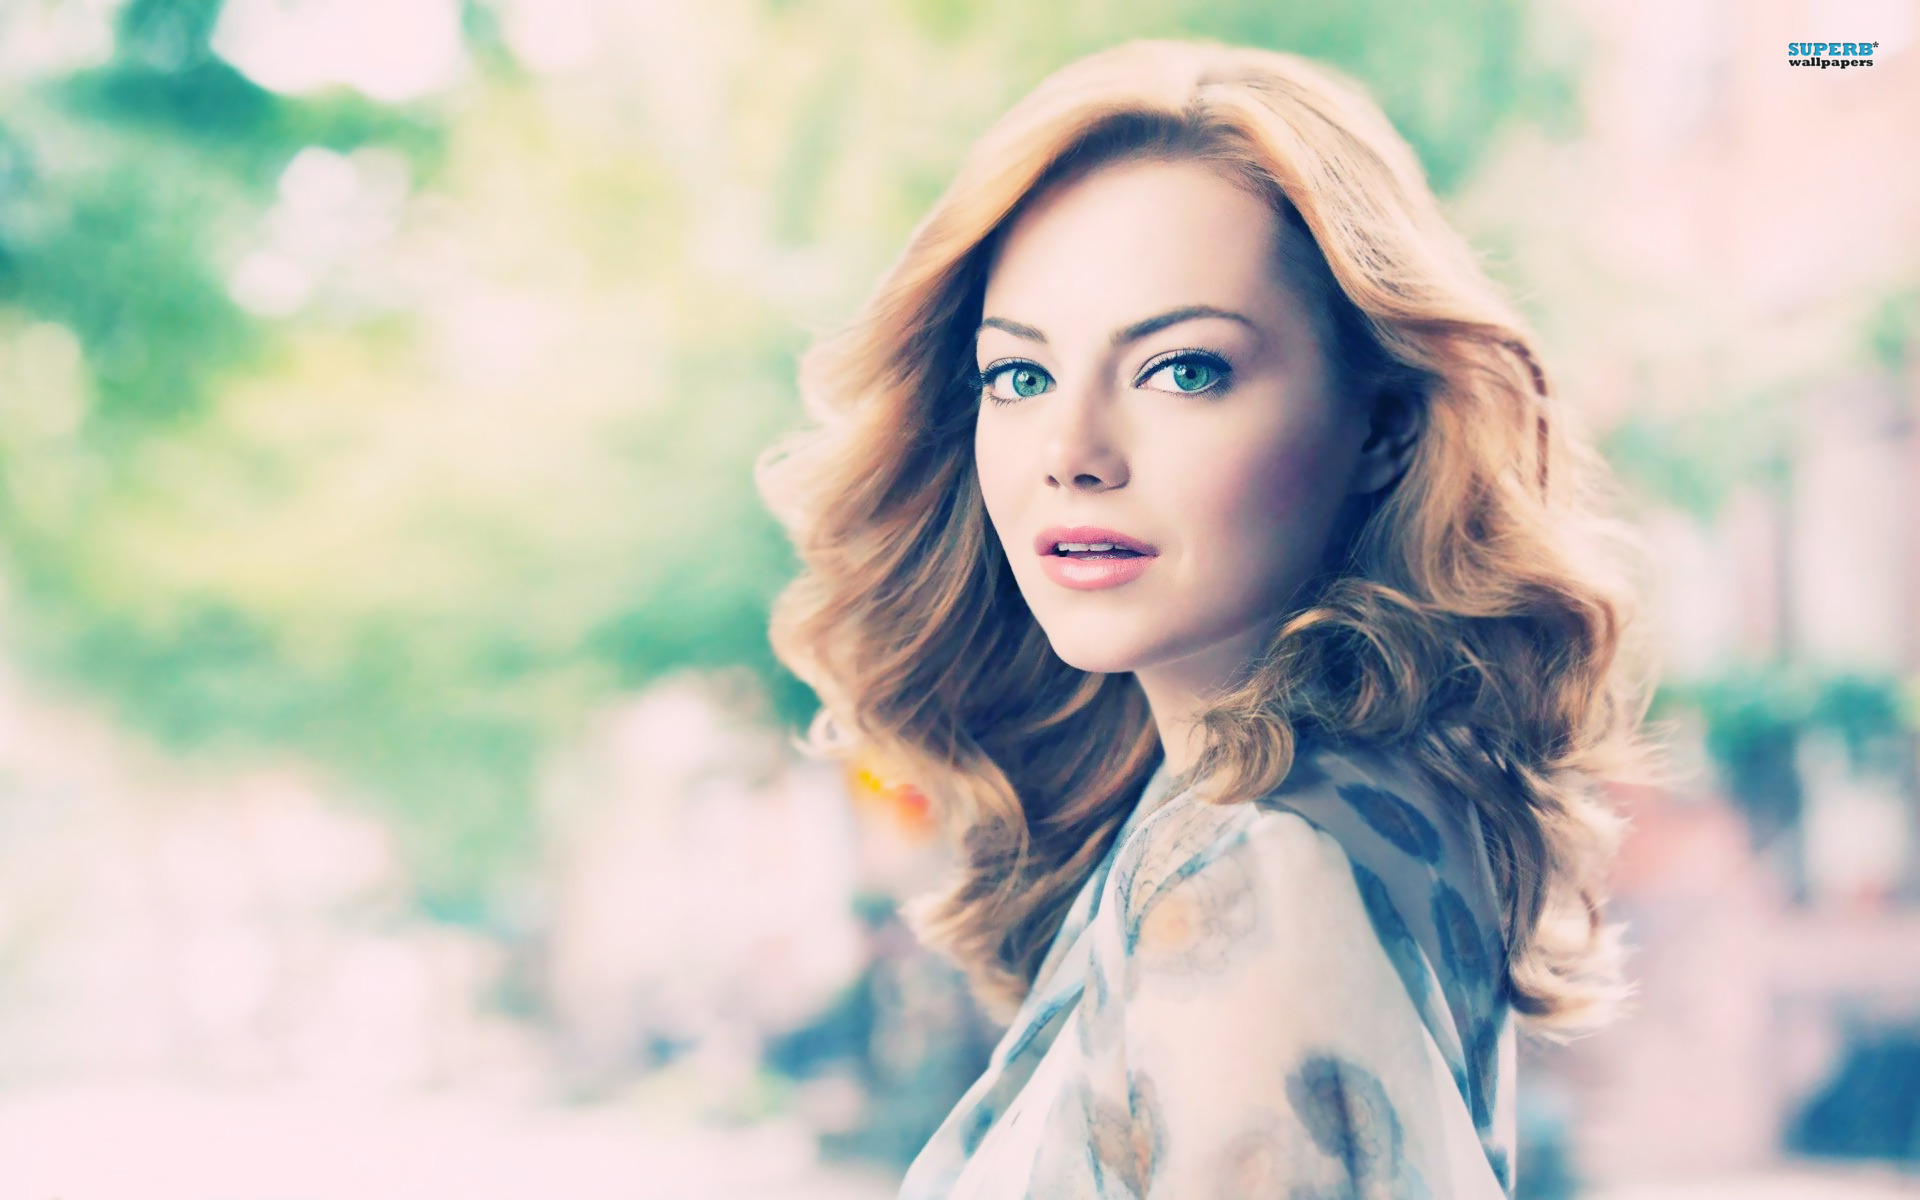 Emma Stone wallpaper 1920x1200 jpg